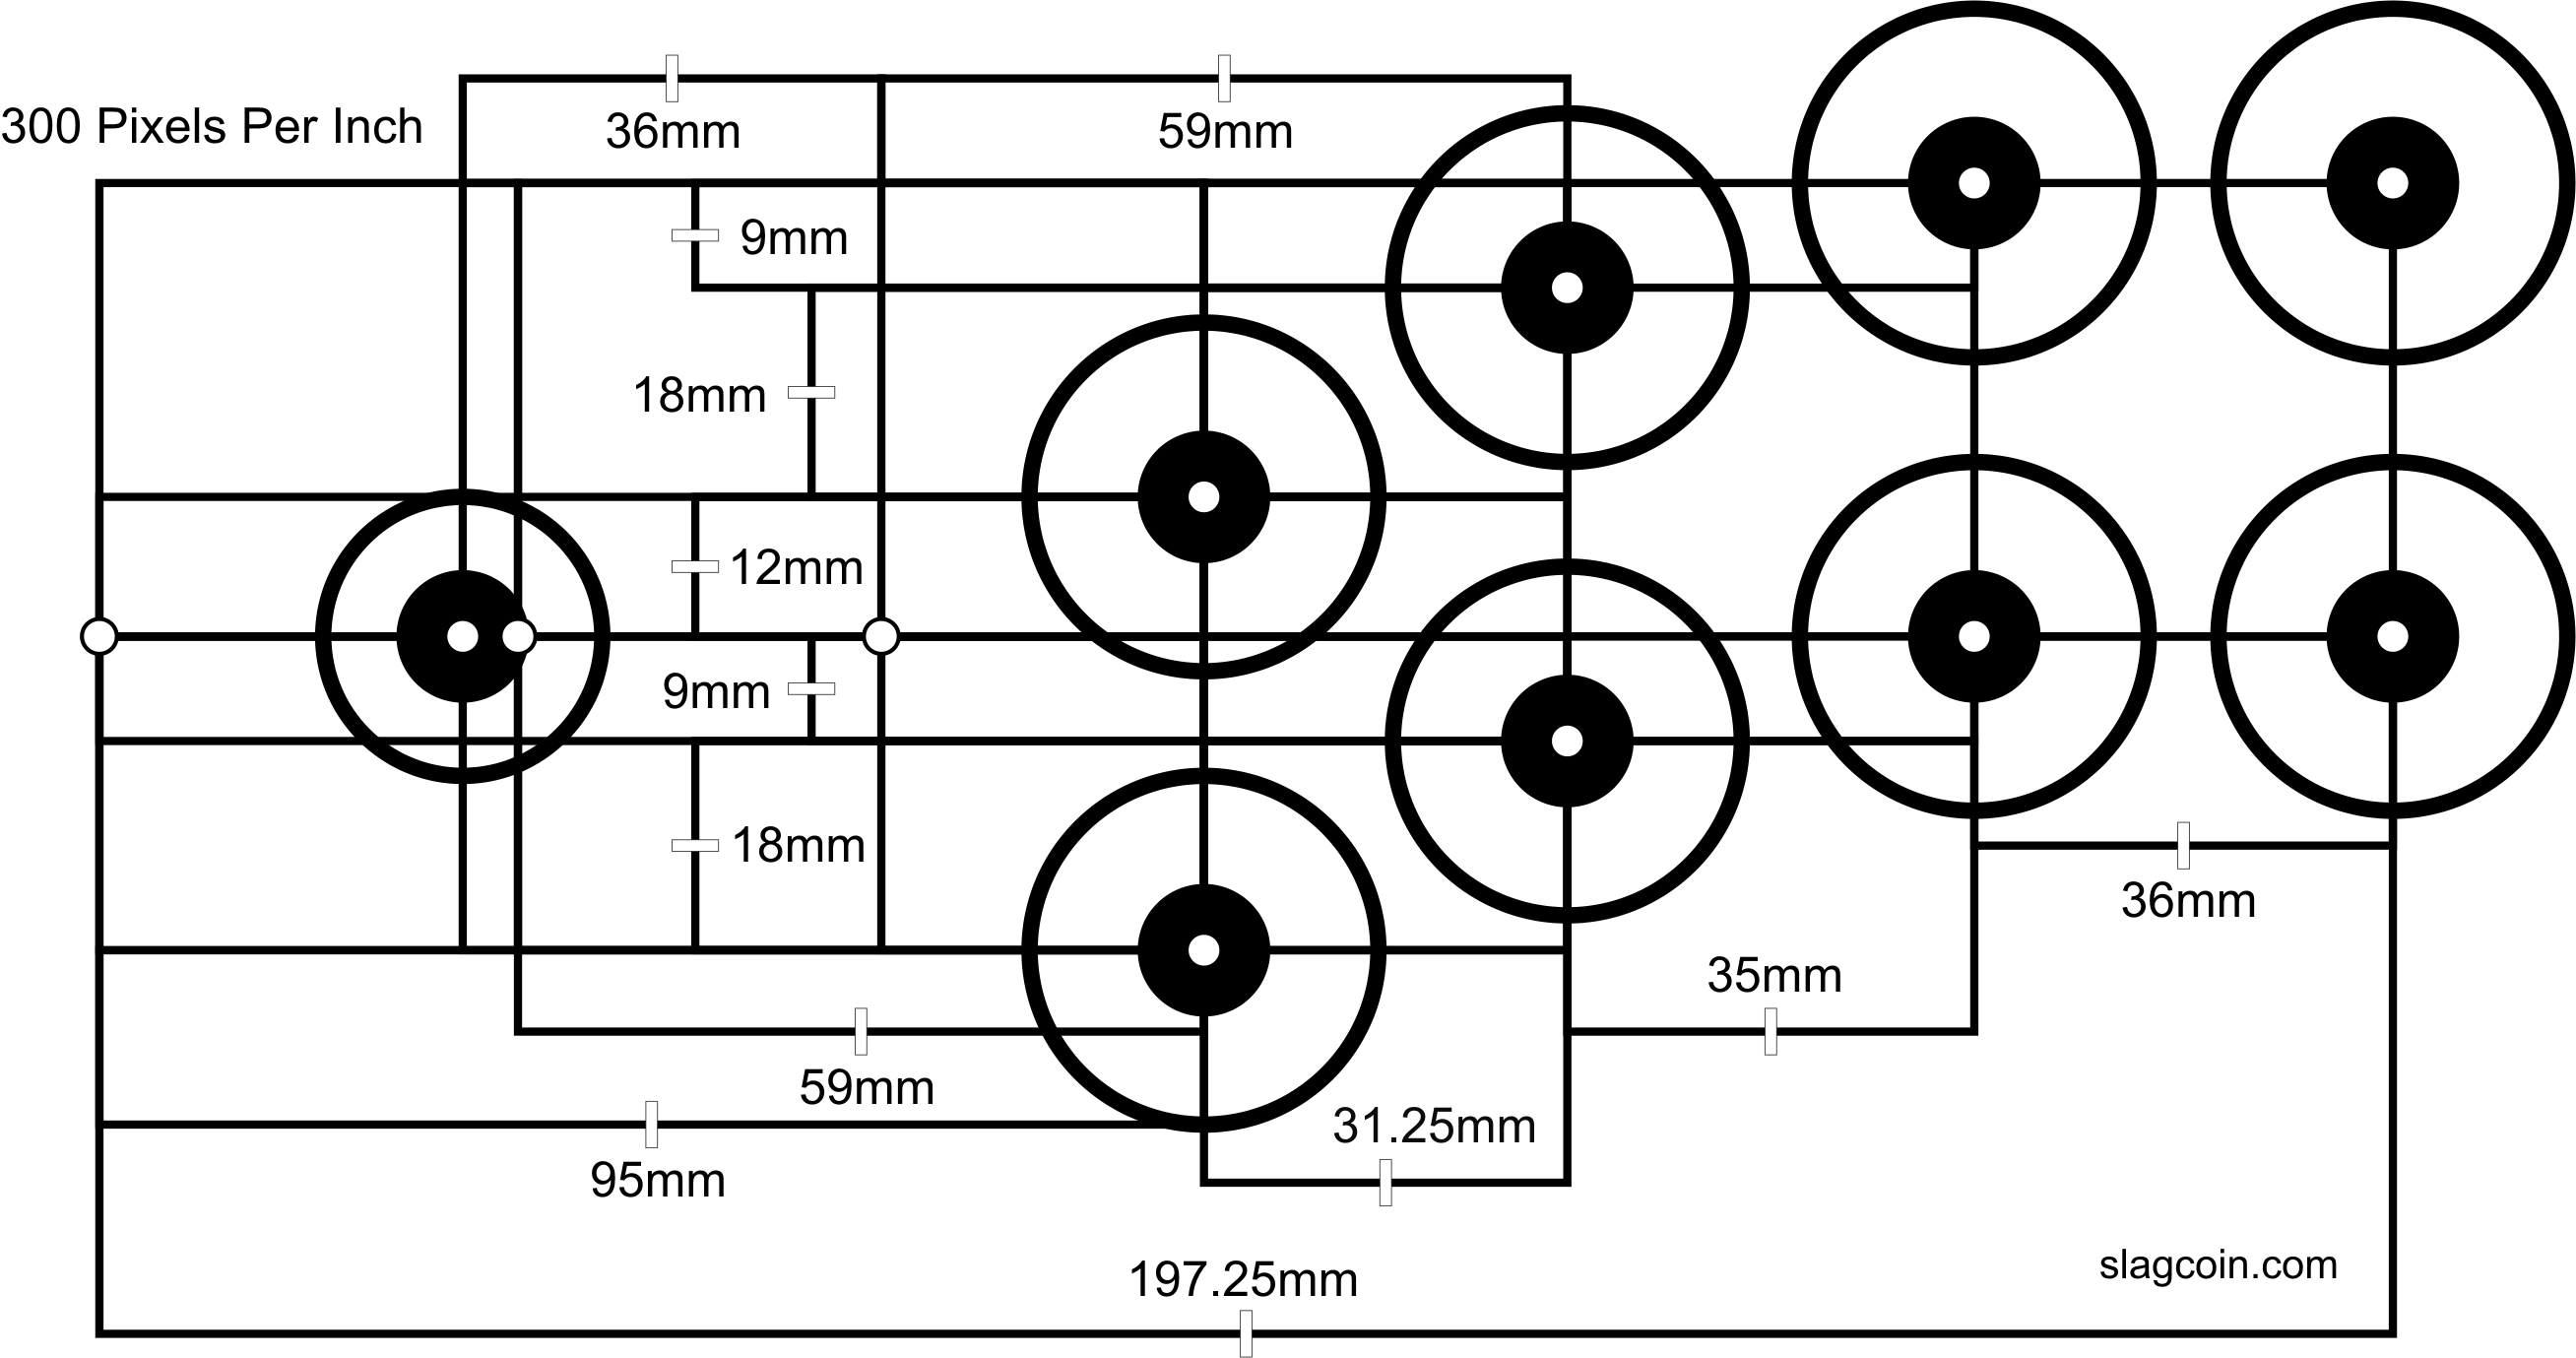 horis36_l joystick controller panel layout